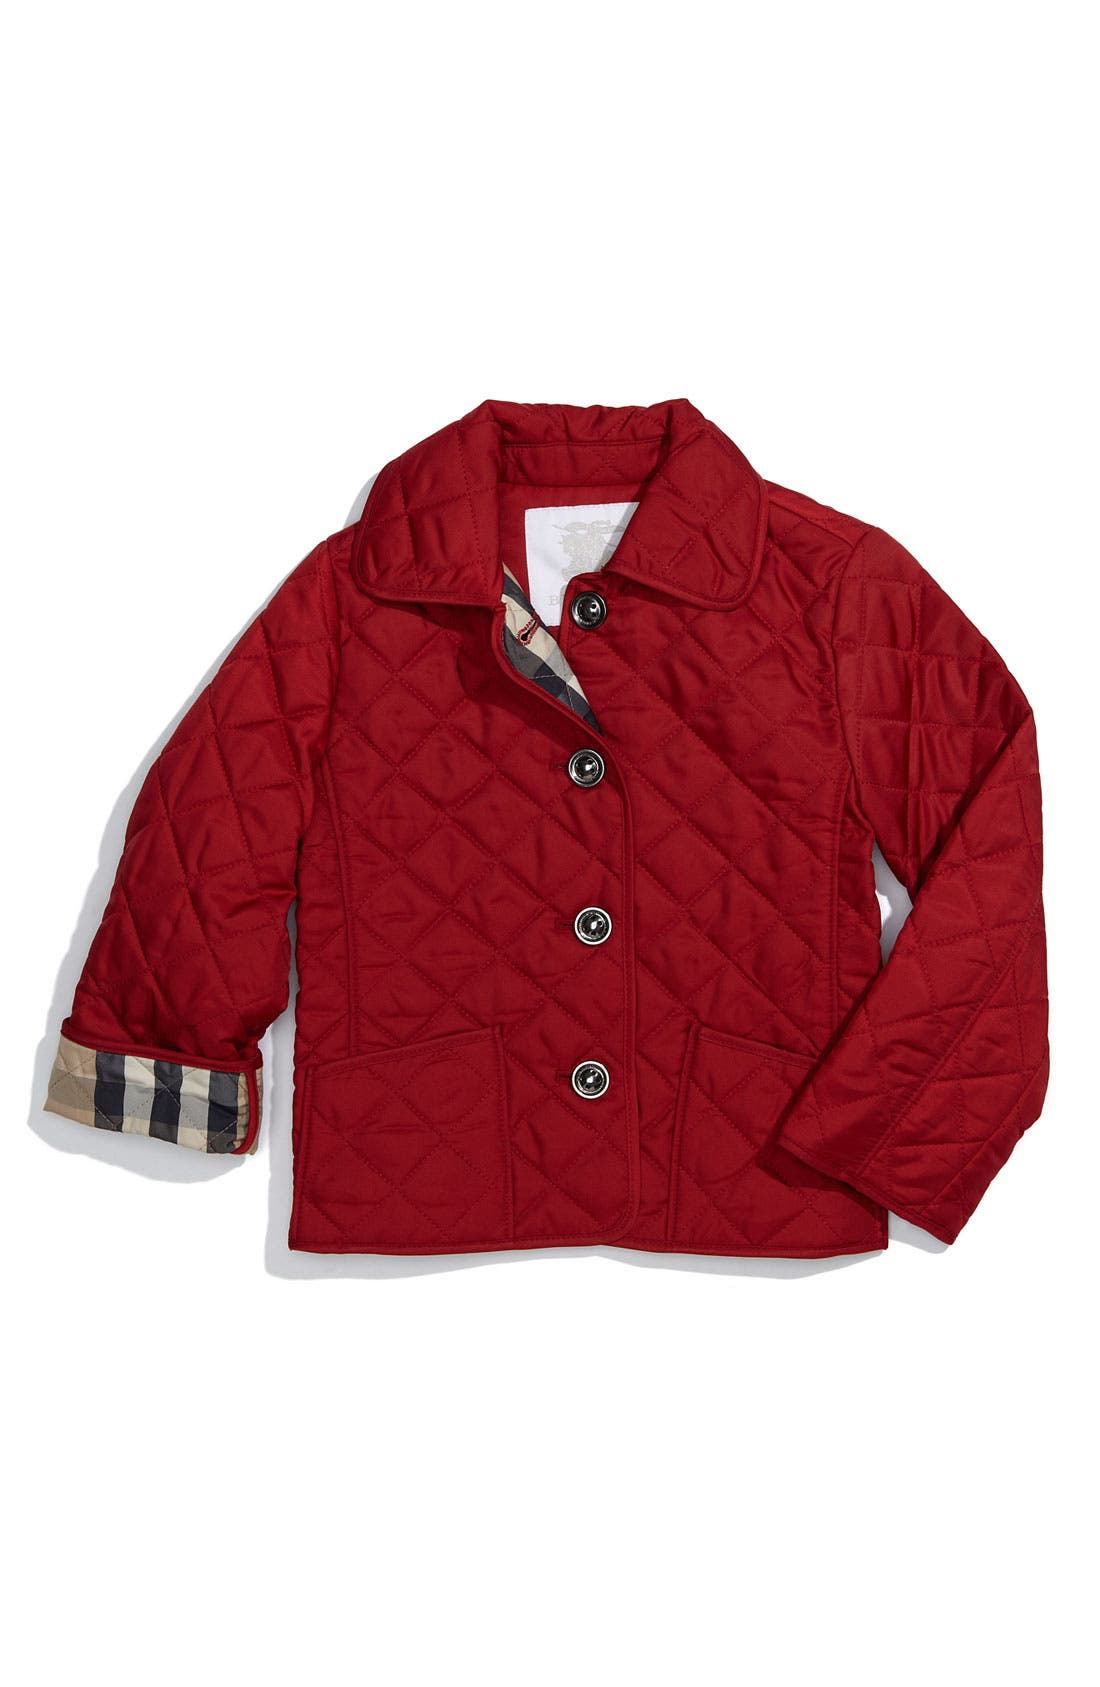 Alternate Image 1 Selected - Burberry Quilted Jacket (Toddler)